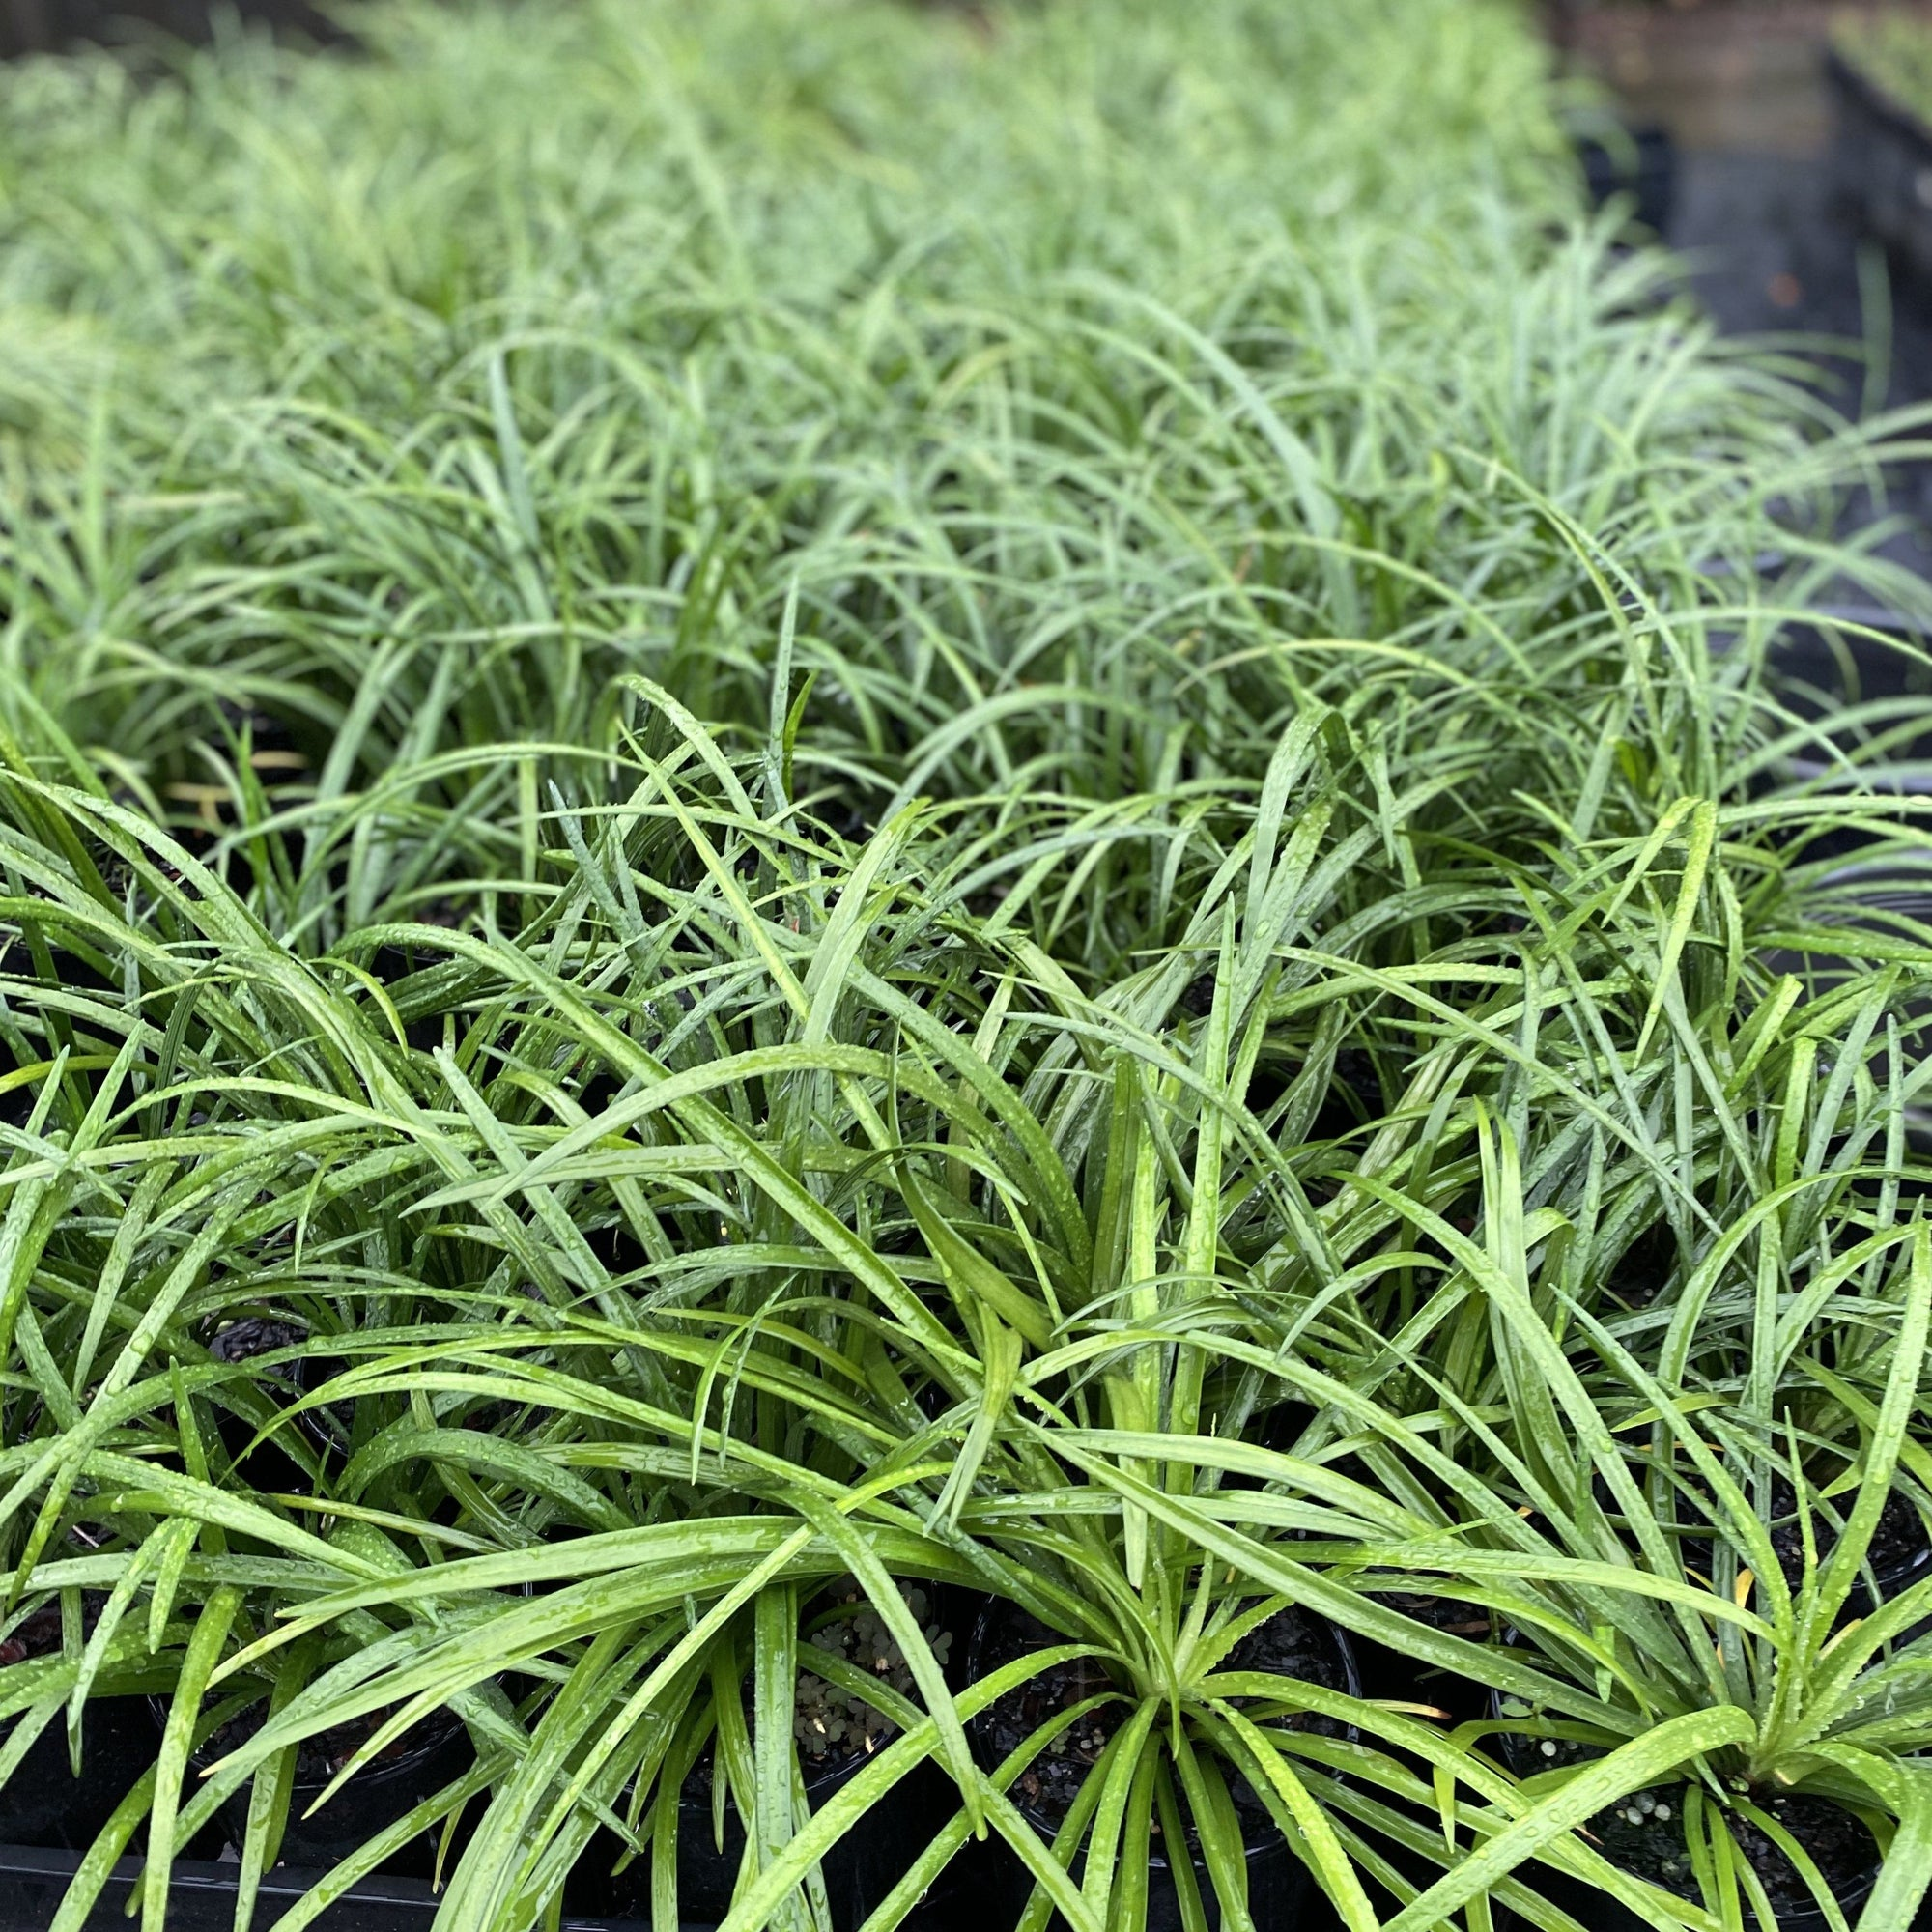 Liriope muscari Evergreen Giant